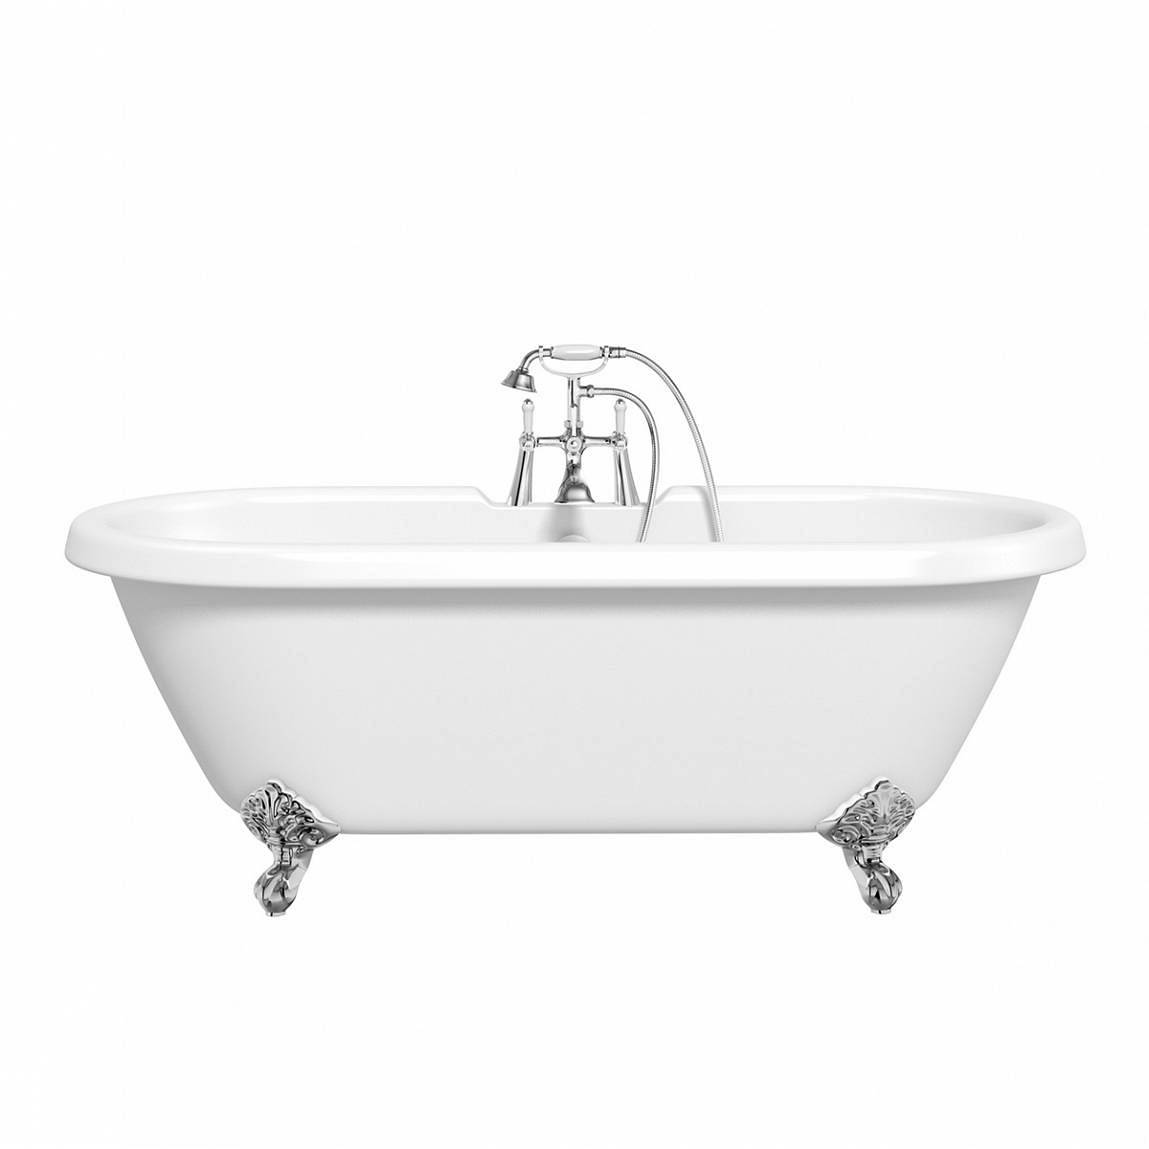 Image of Shakespeare Roll Top Bath Large with Ball Feet